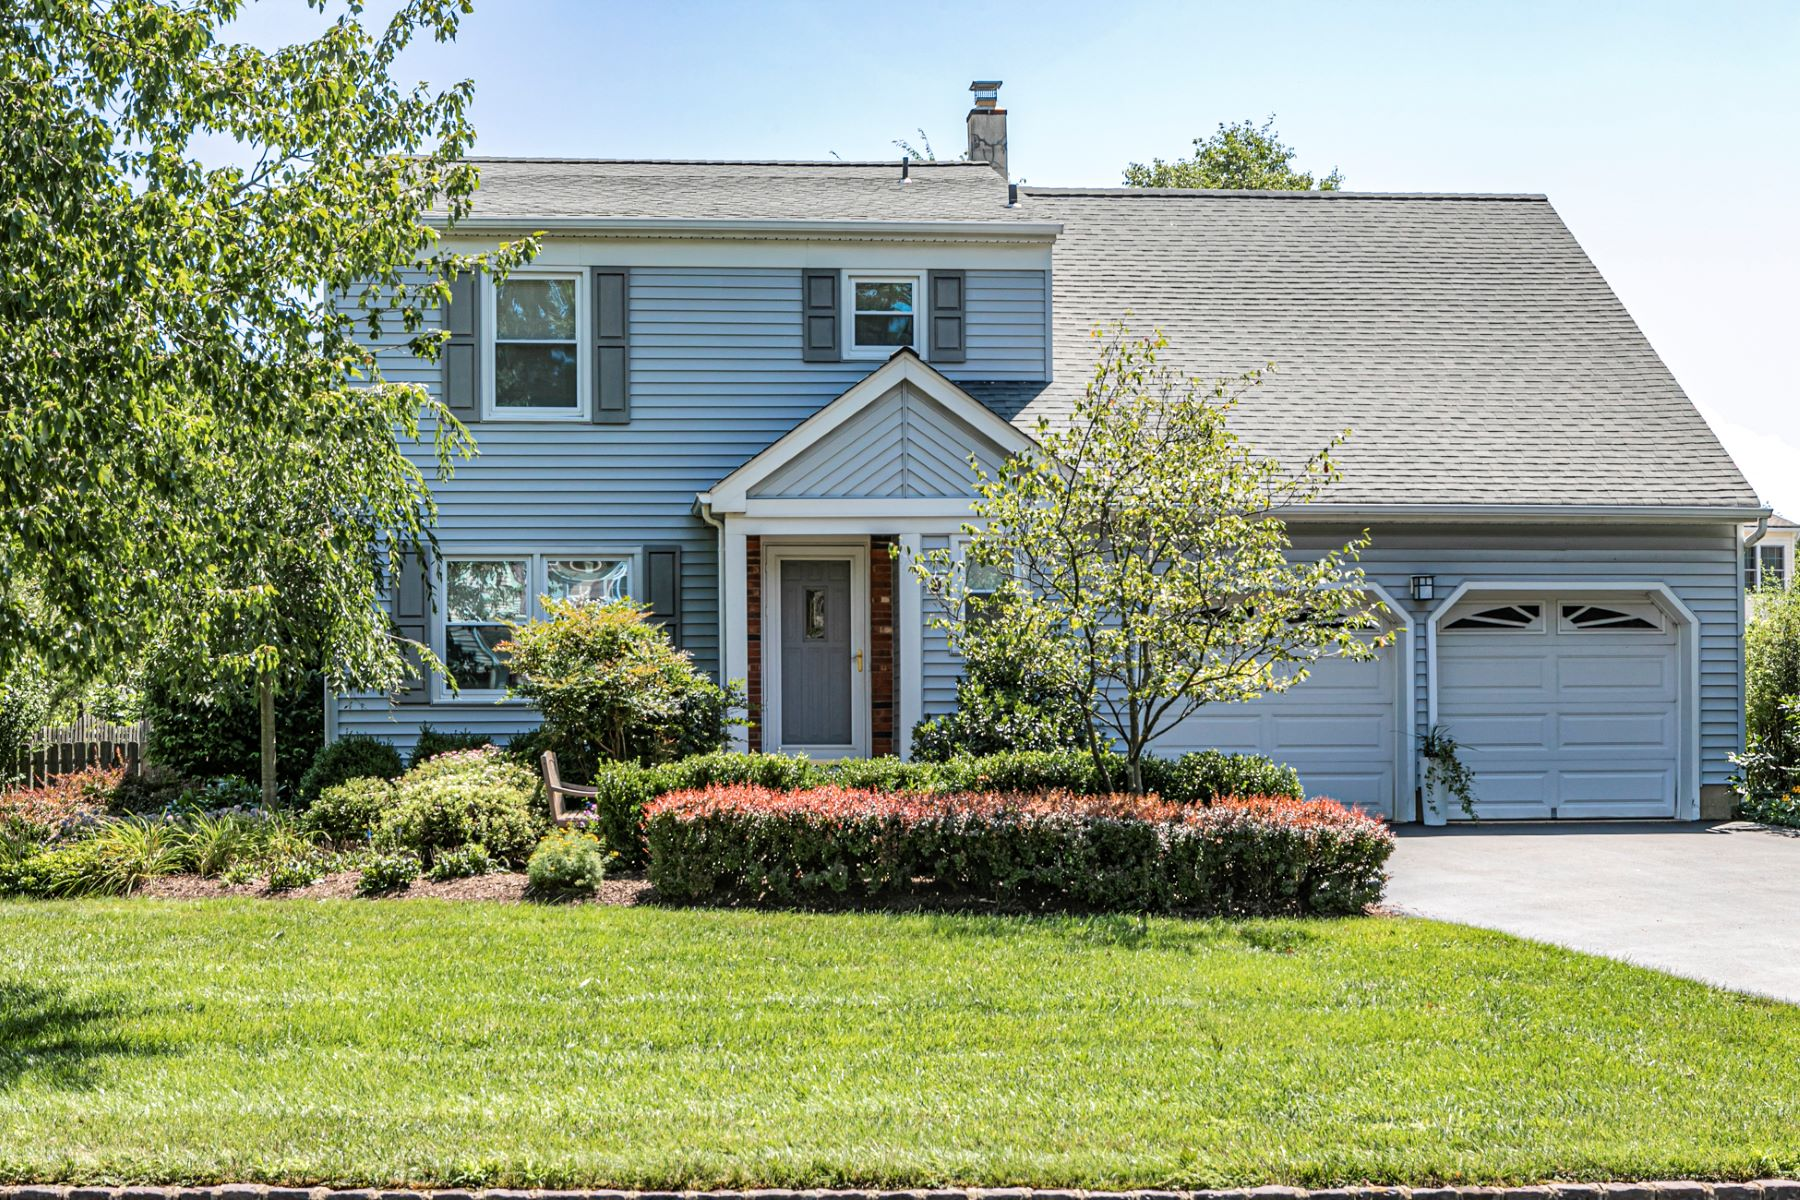 Single Family Homes for Sale at Up To The Minute Style 9 Dubois Round, Hillsborough, New Jersey 08844 United States